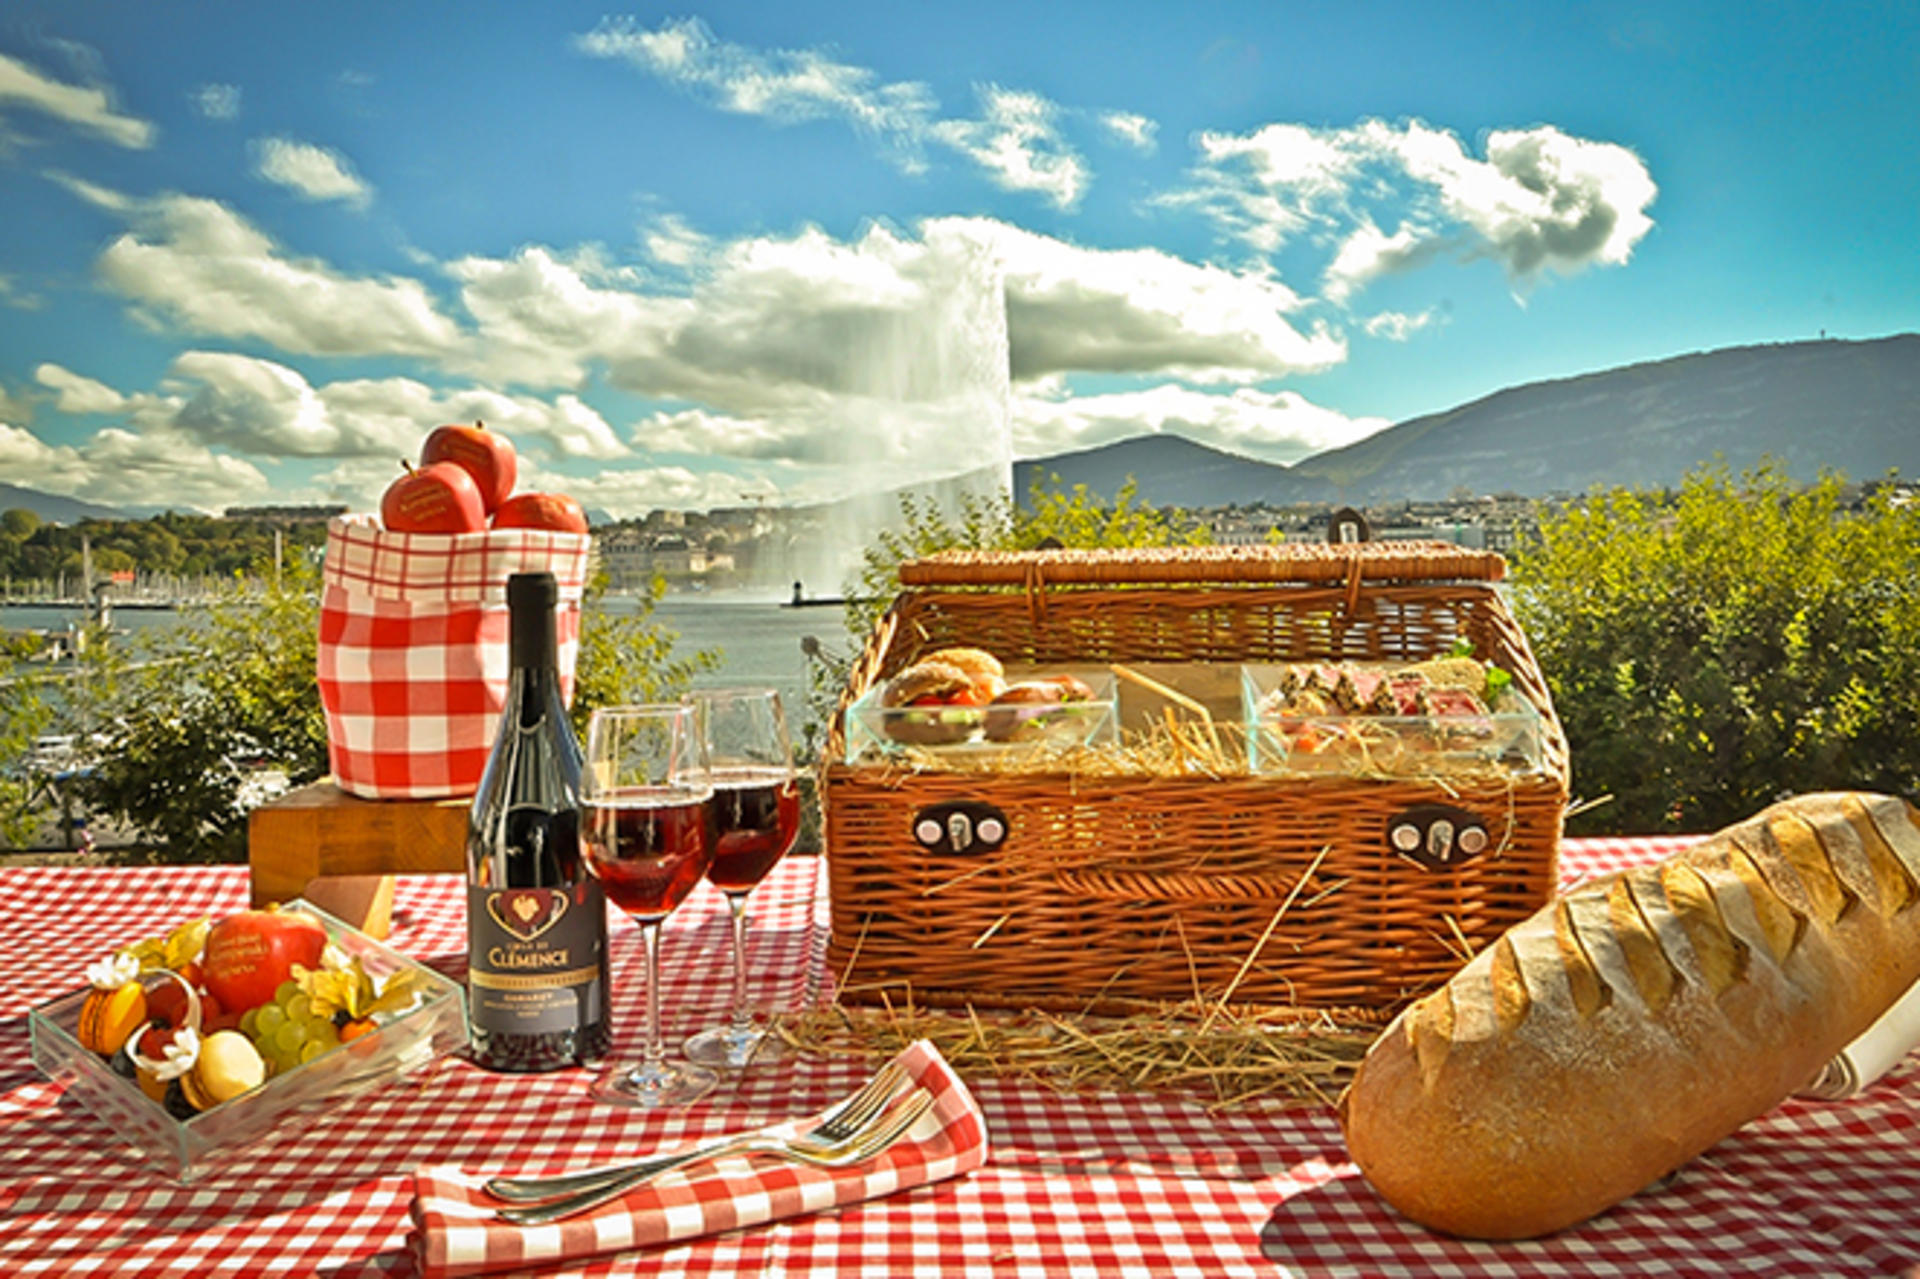 Deluxe Picnic Basket for two